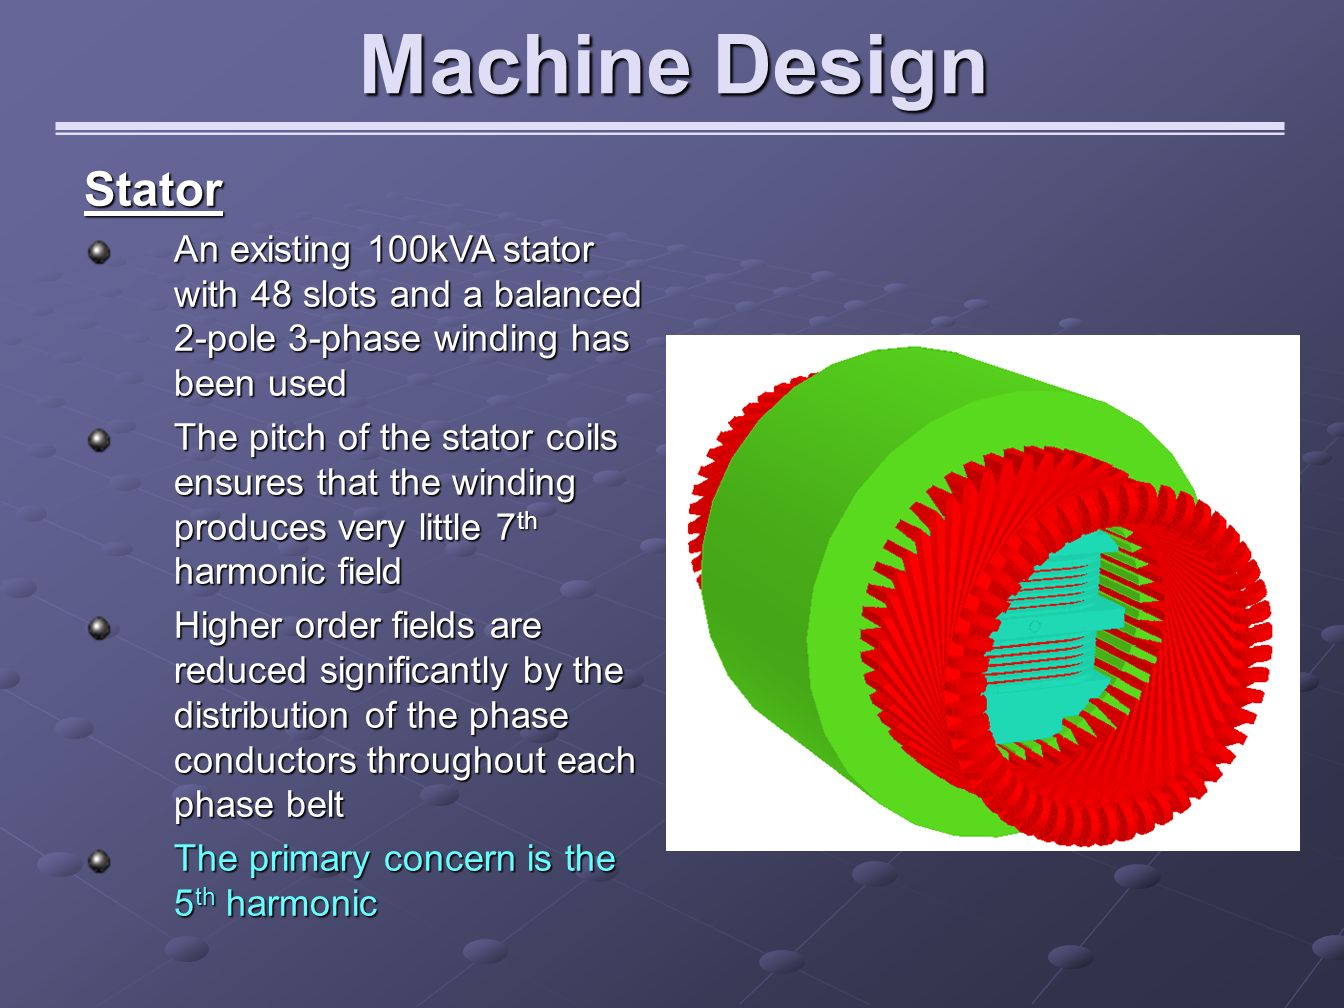 Machine Design Stator. An existing 100kVA stator with 48 slots and a balanced 2-pole 3-phase winding has been used.